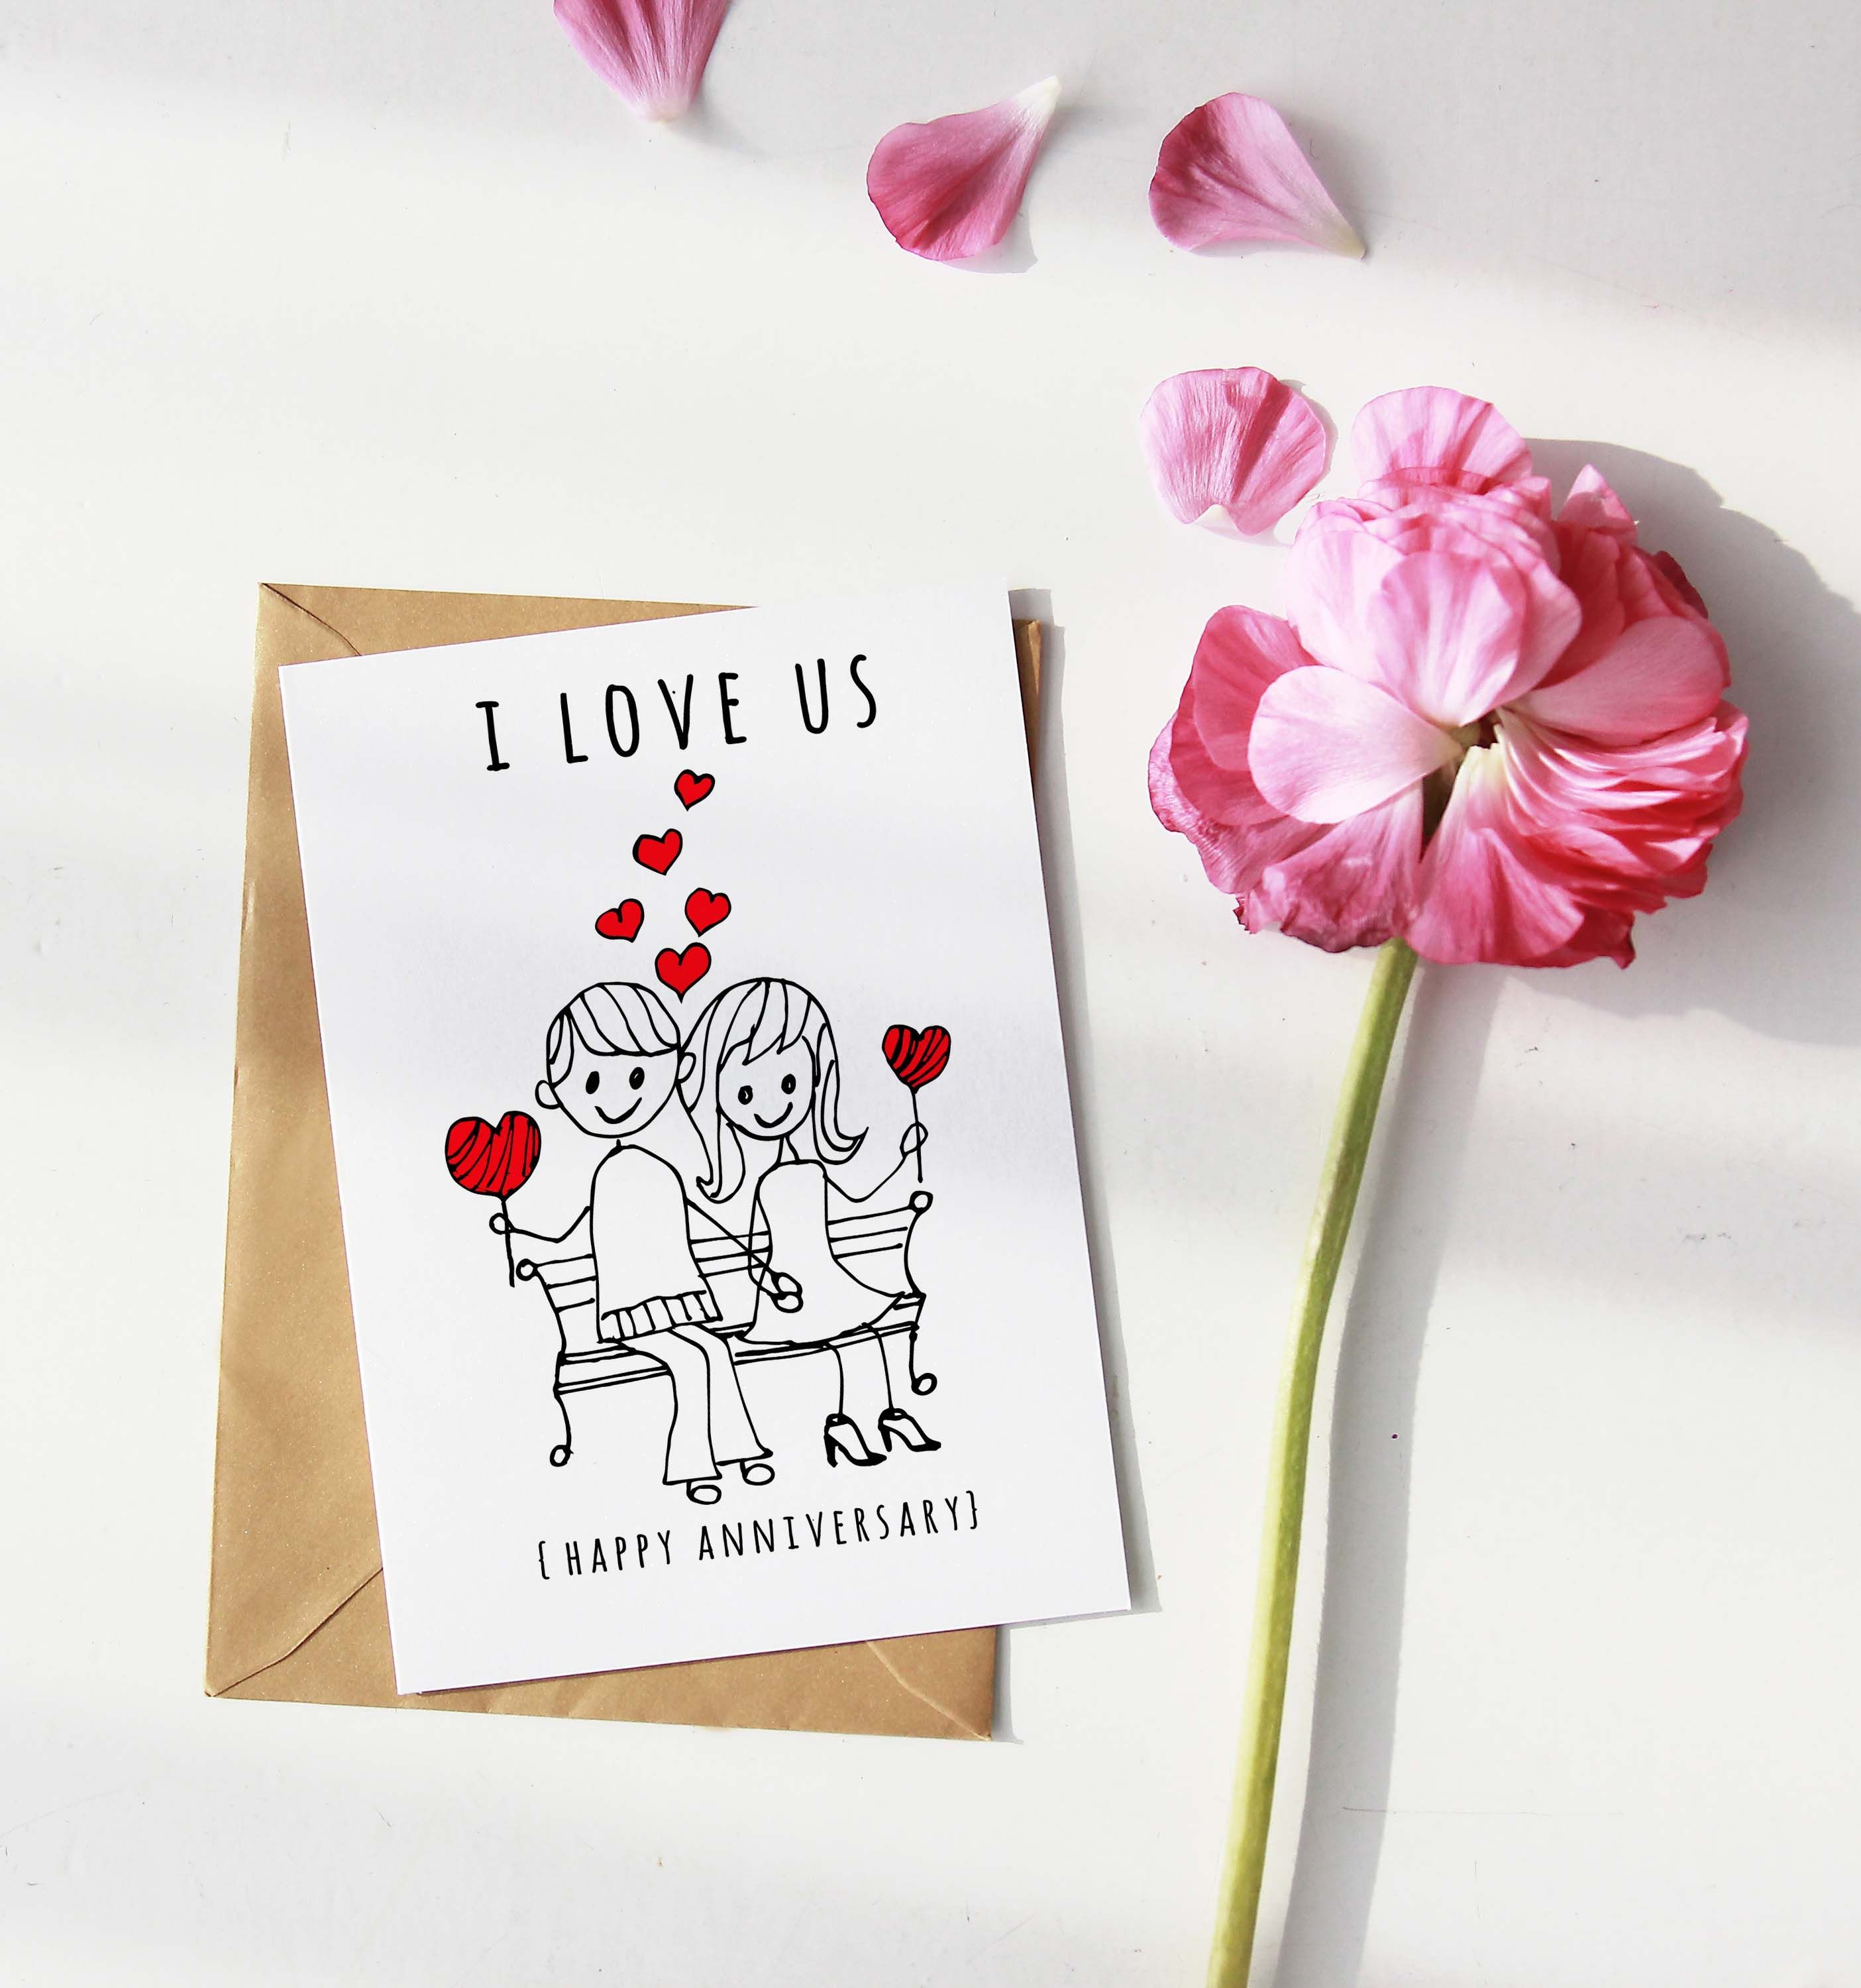 By Instalovee Funny Family Christmas Cards Birthday Gifts For Best Friend Diy Anniversary Gifts For Him